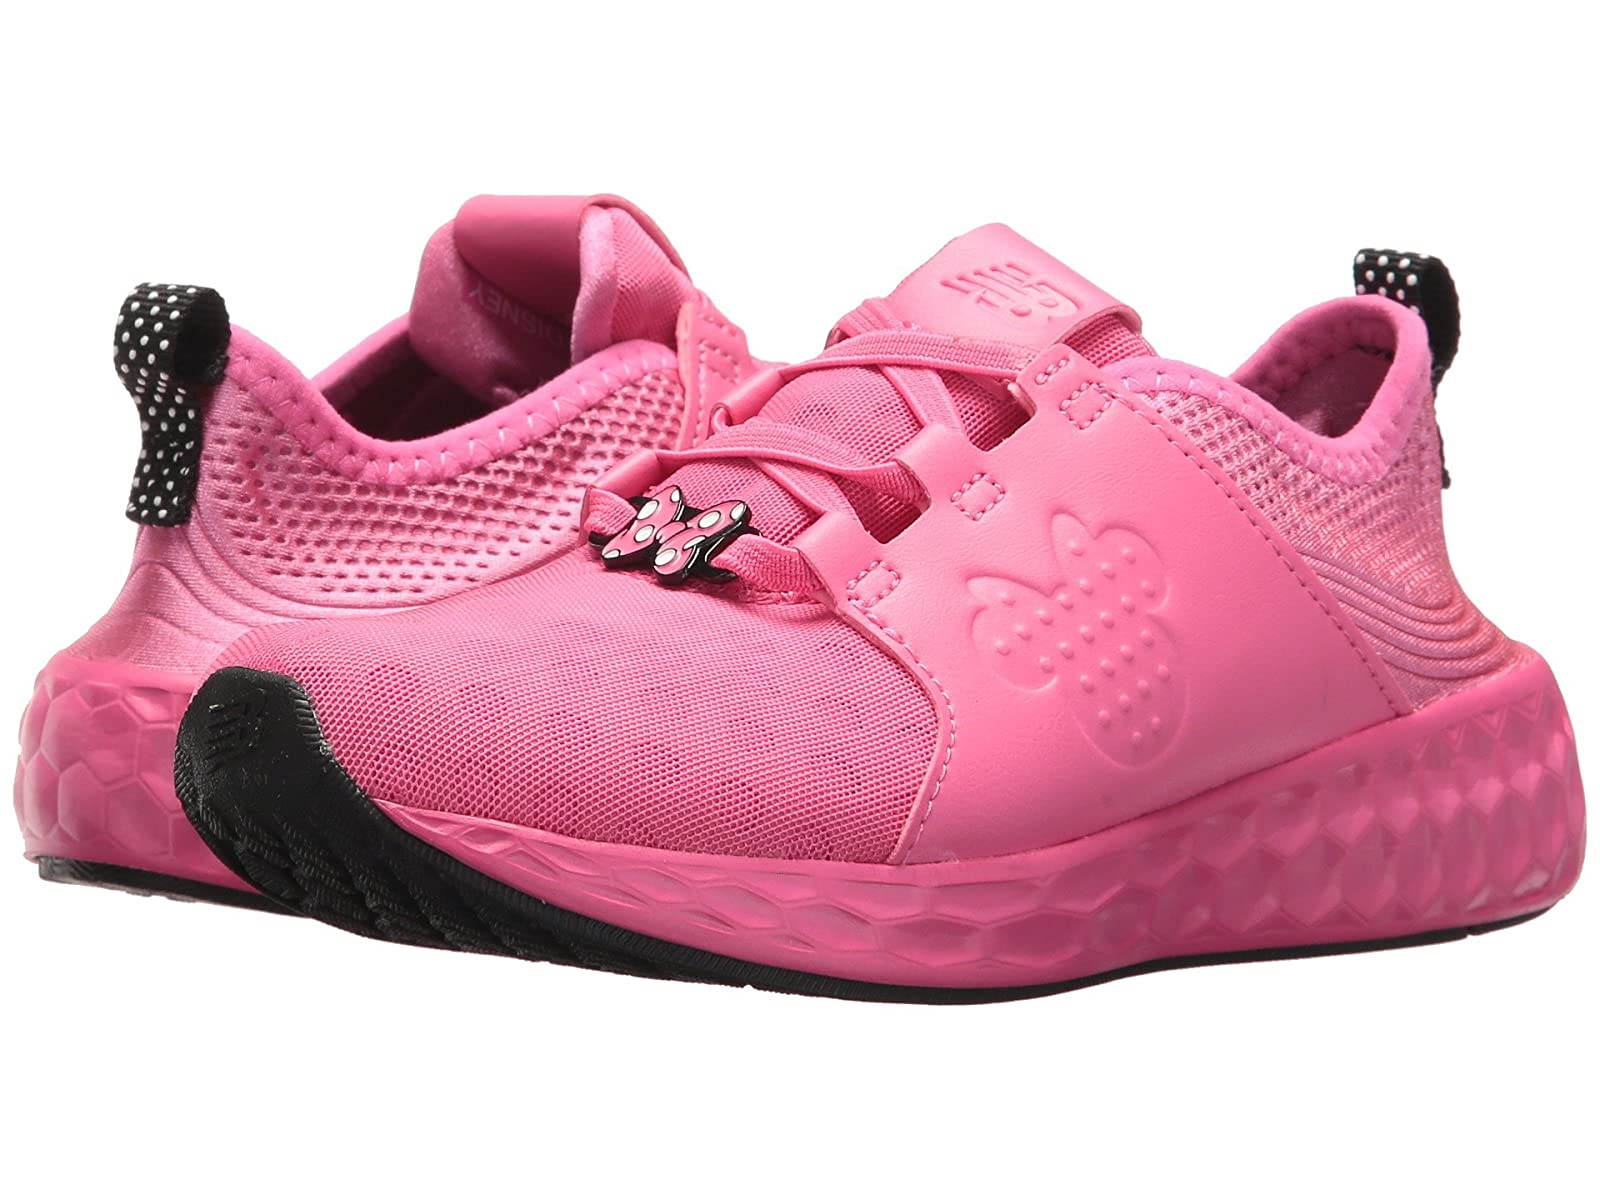 New Balance Kids KVCRZv1P - Minnie Rocks the Dots (Little Kid)Cheap and distinctive eye-catching shoes